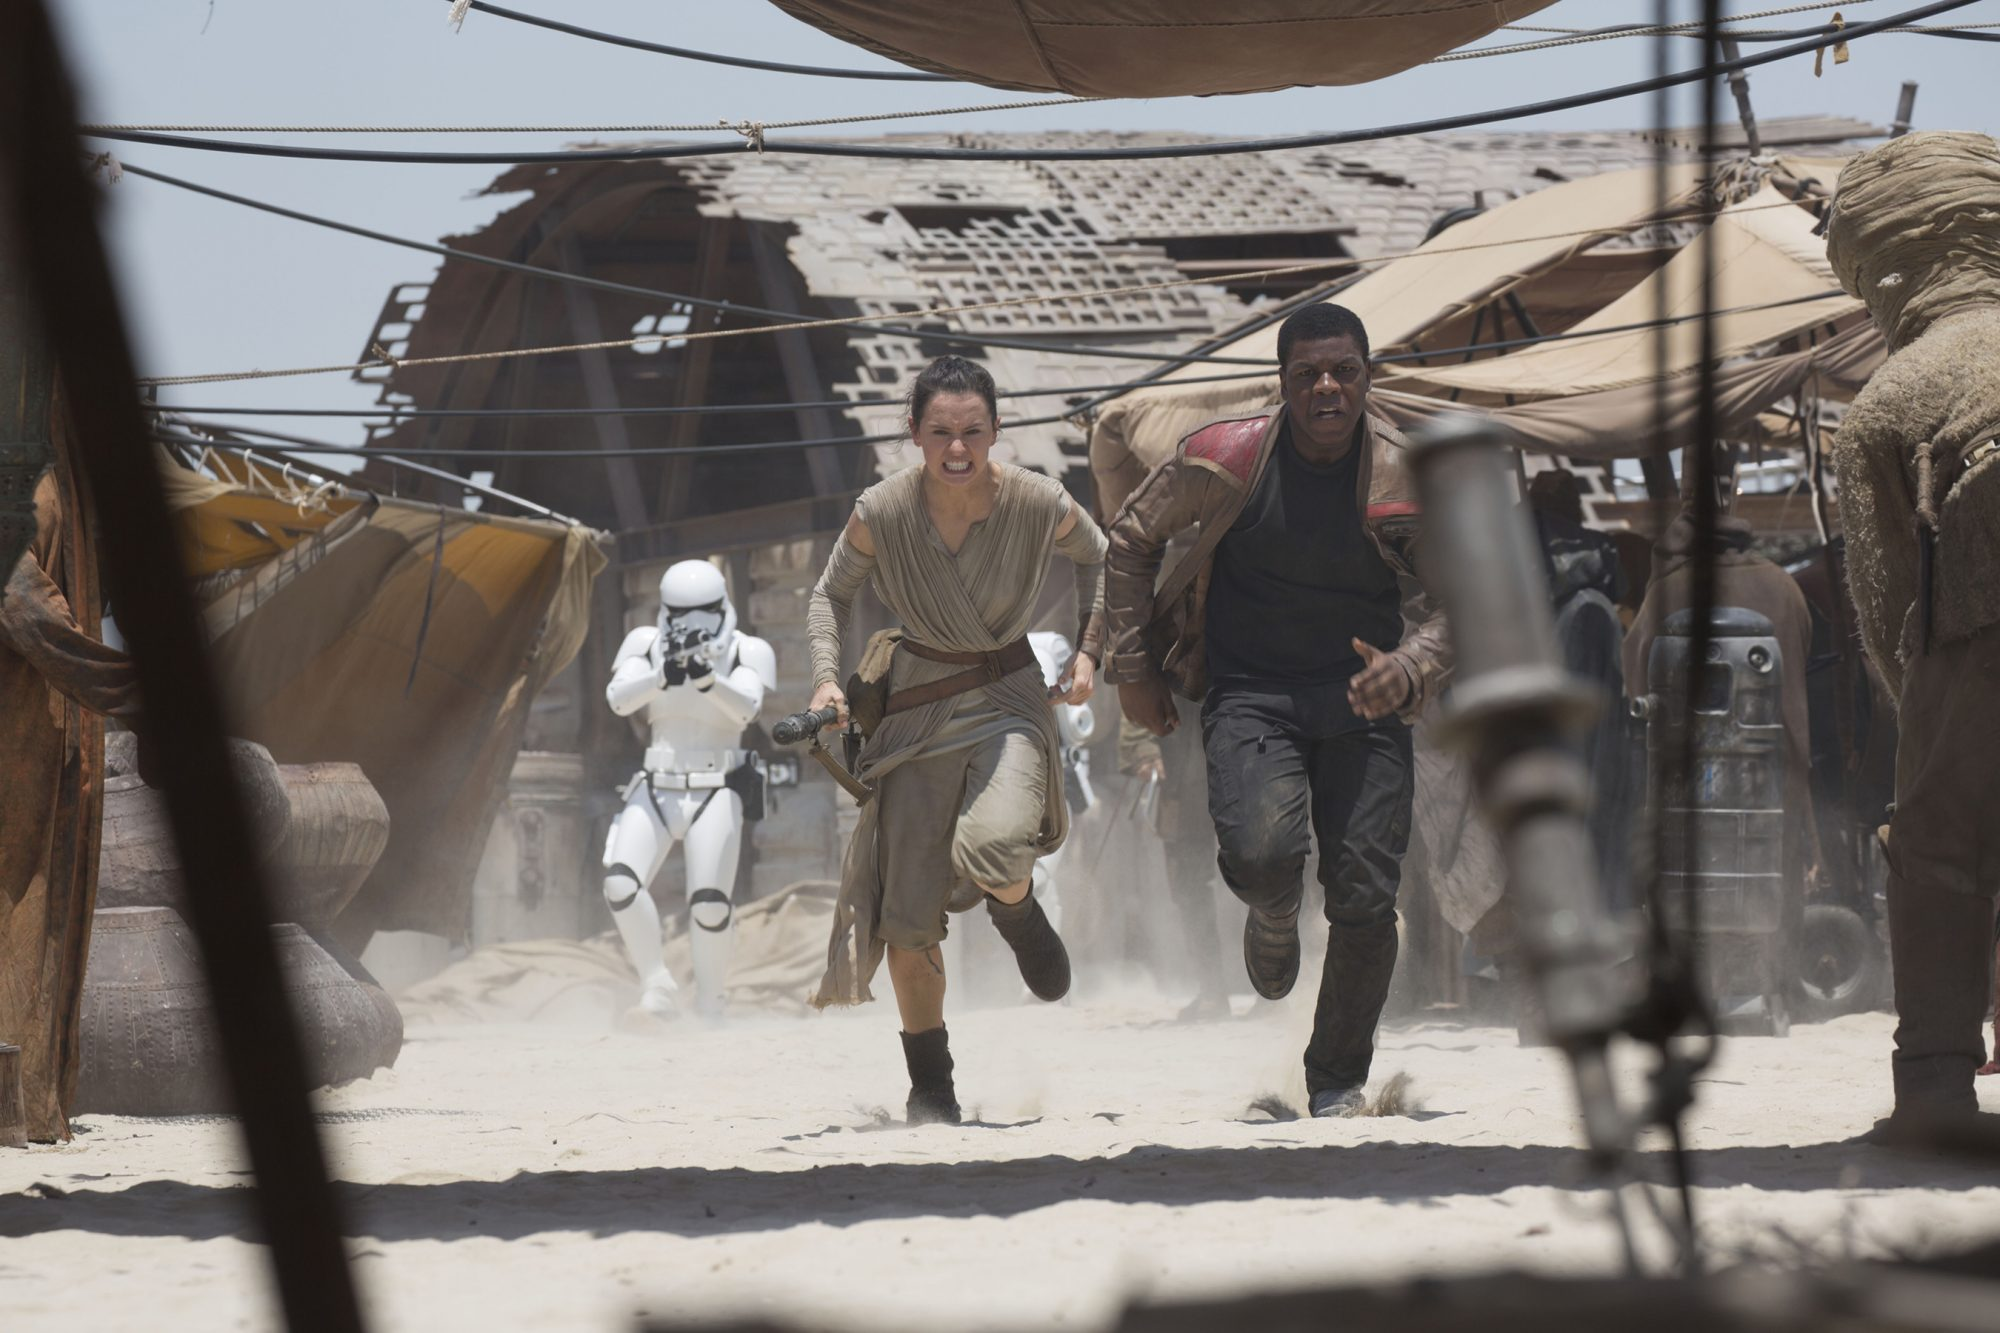 STAR WARS: THE FORCE AWAKENS, (aka STAR WARS: EPISODE VII - THE FORCE AWAKENS), from left: Daisy